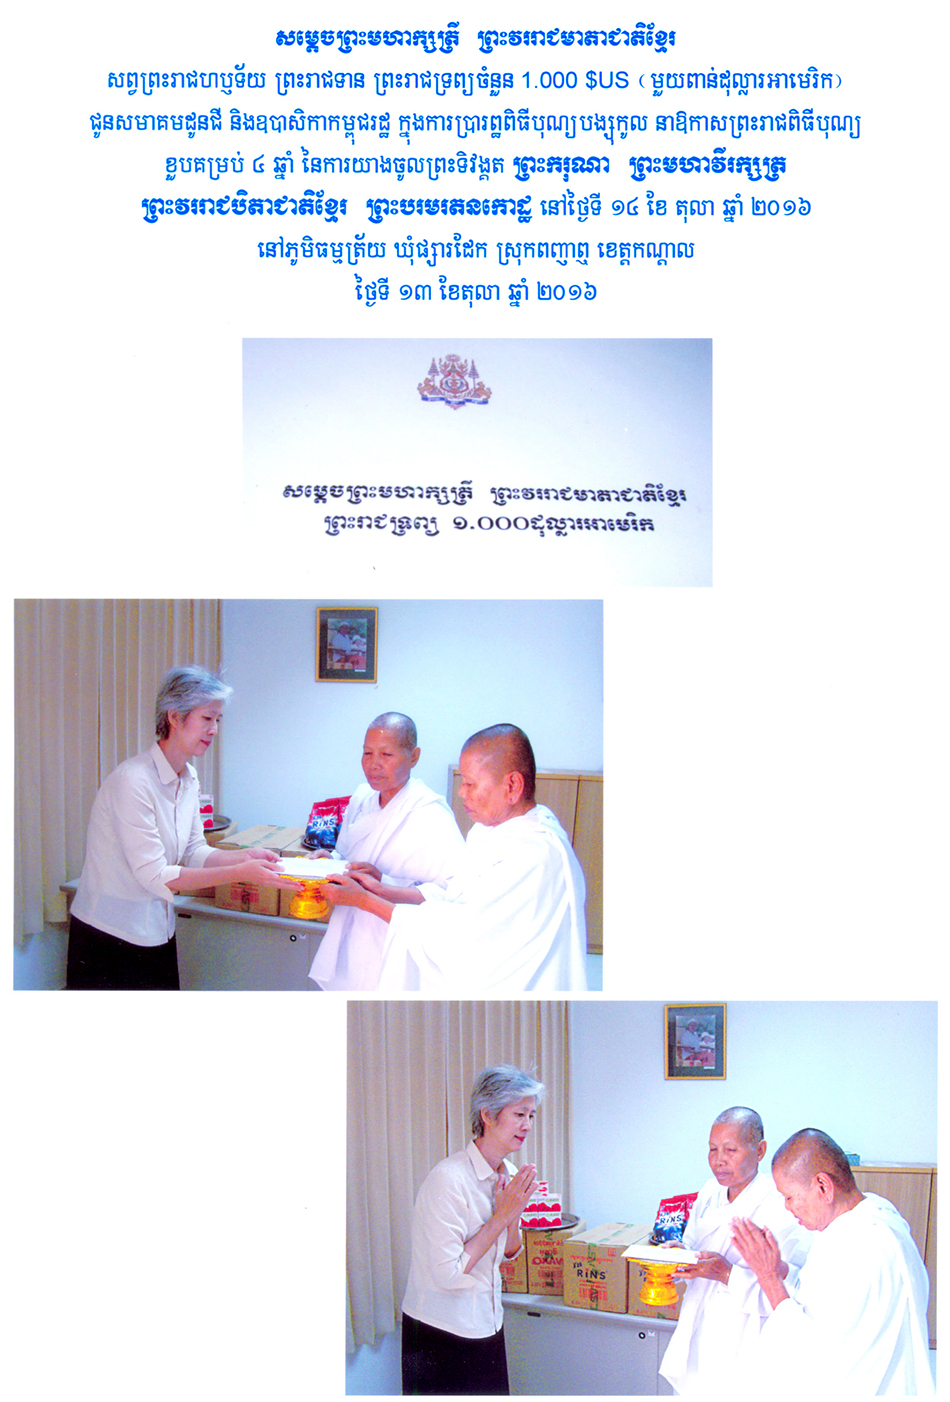 All/activity/ActiondeNorodomSihanouk/2016/Octobre/id1562/photo001.jpg